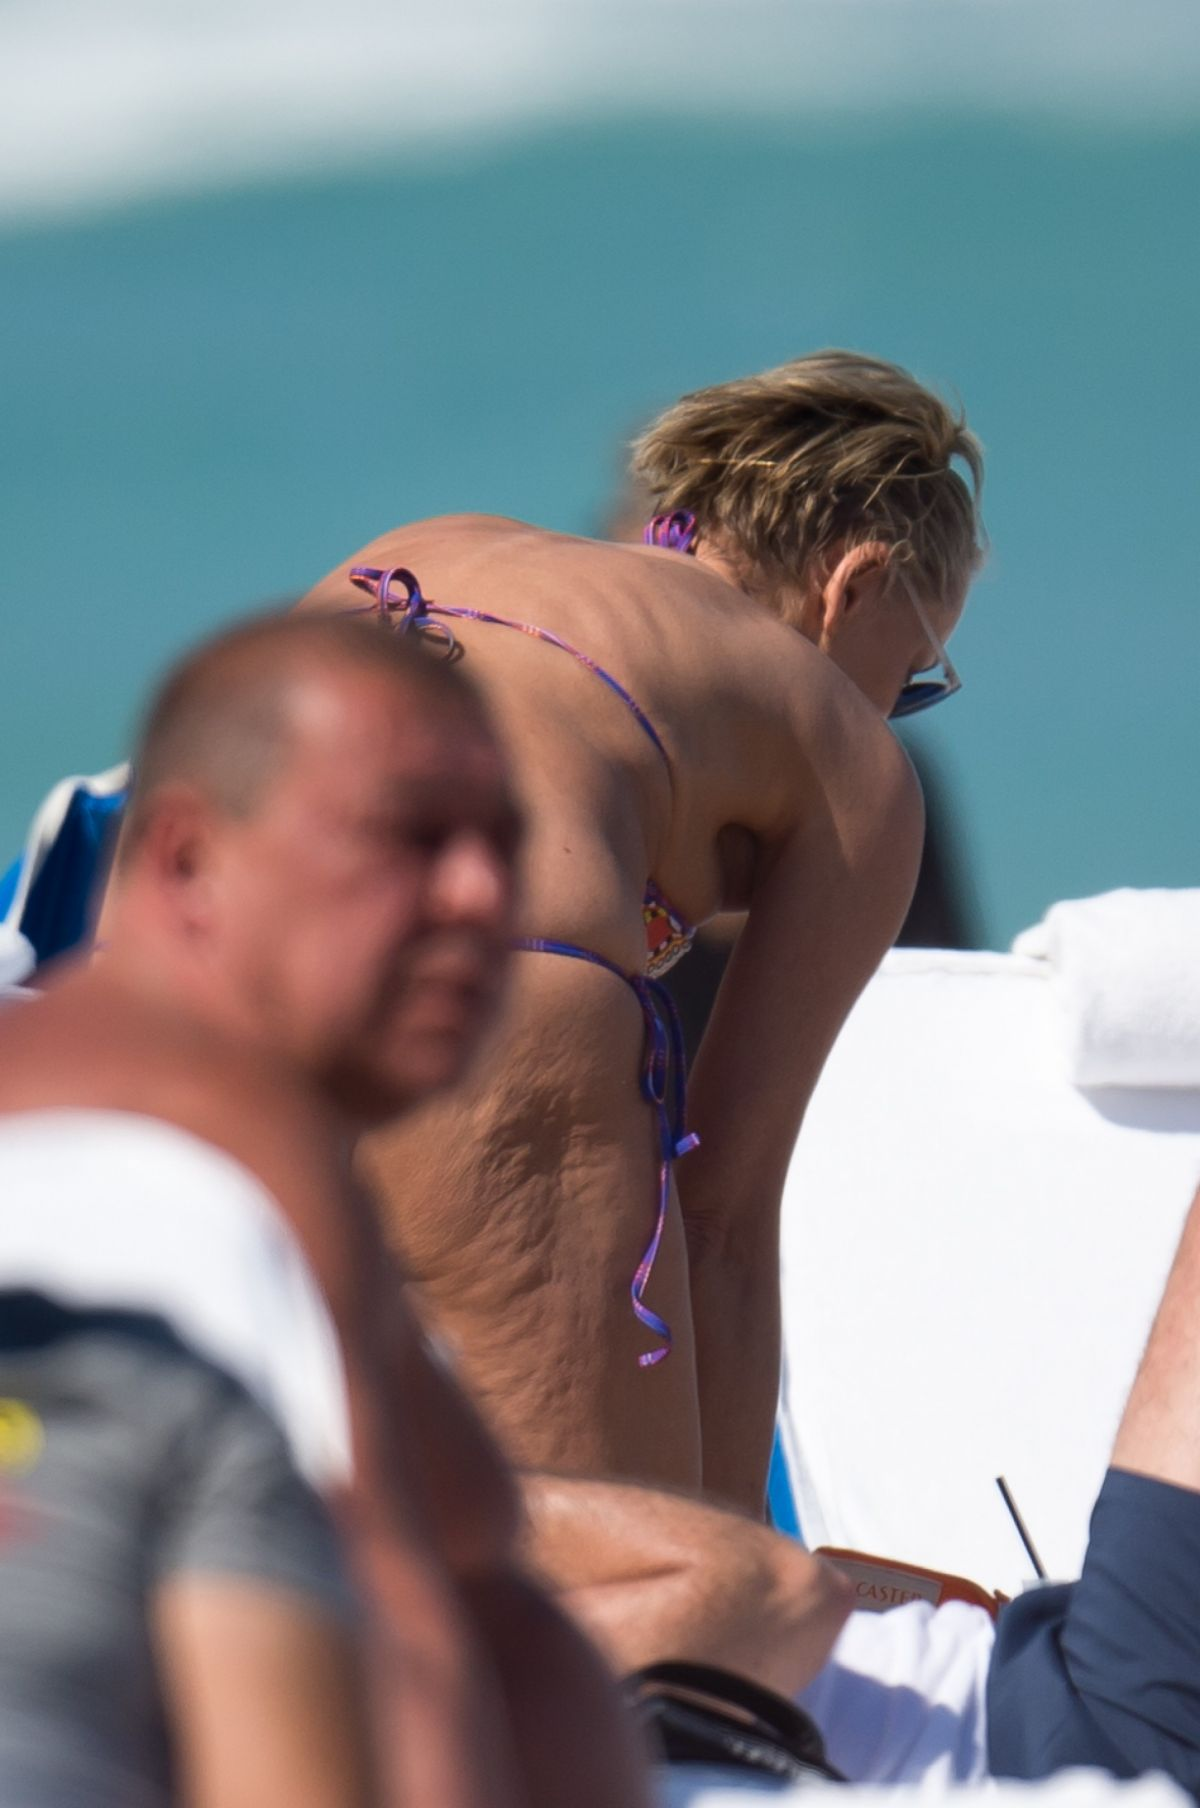 Sharon Stone At the beach in Miami with her boyfriend